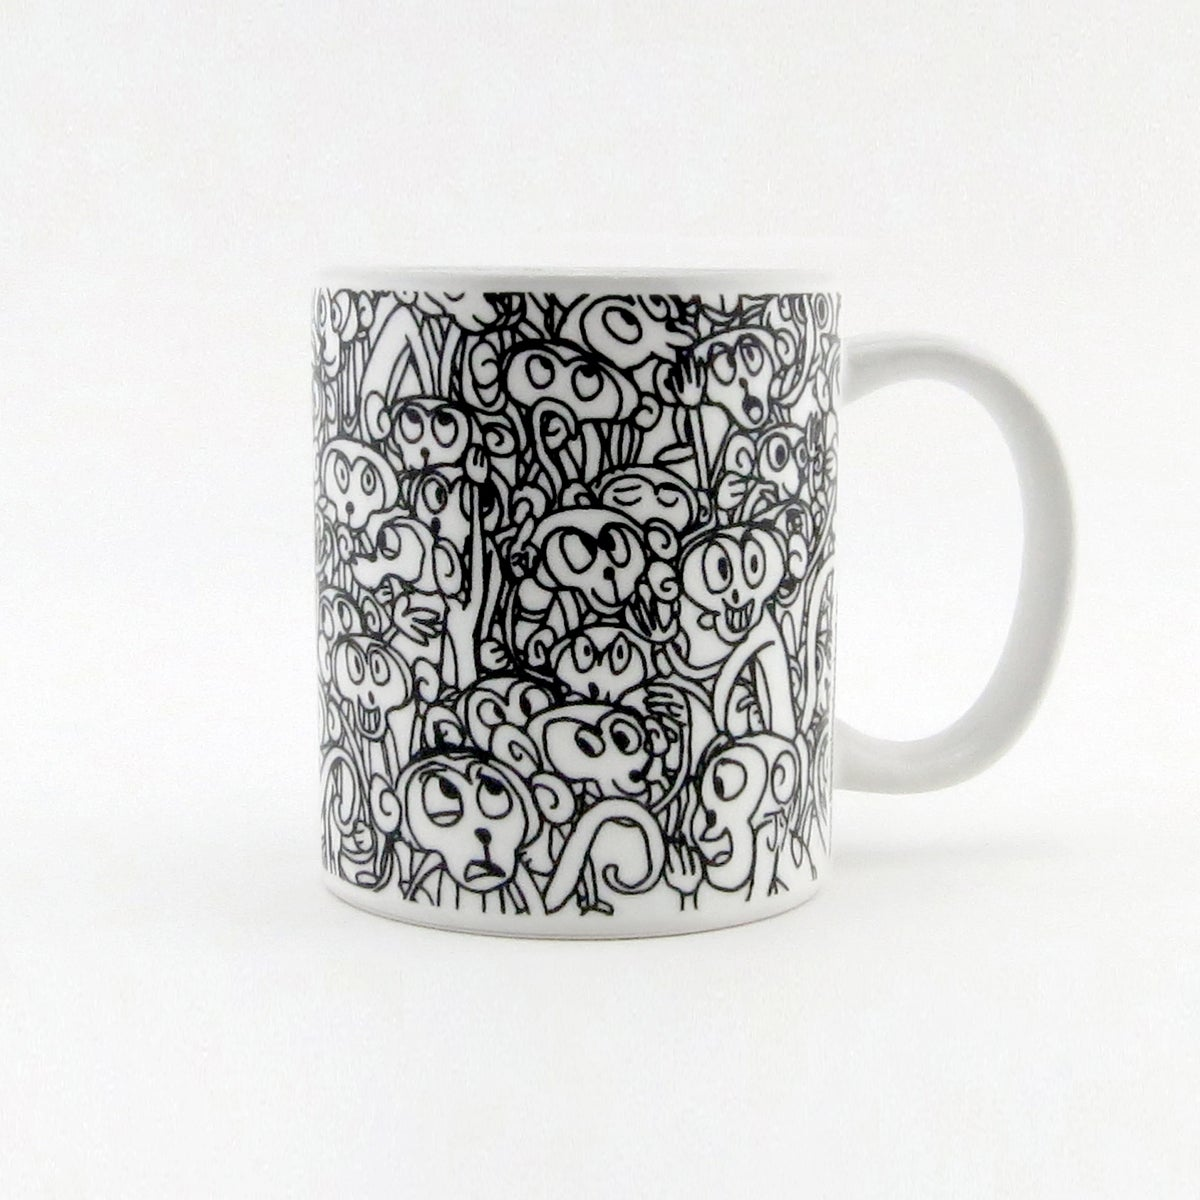 Image of U-Mug: Monkeys